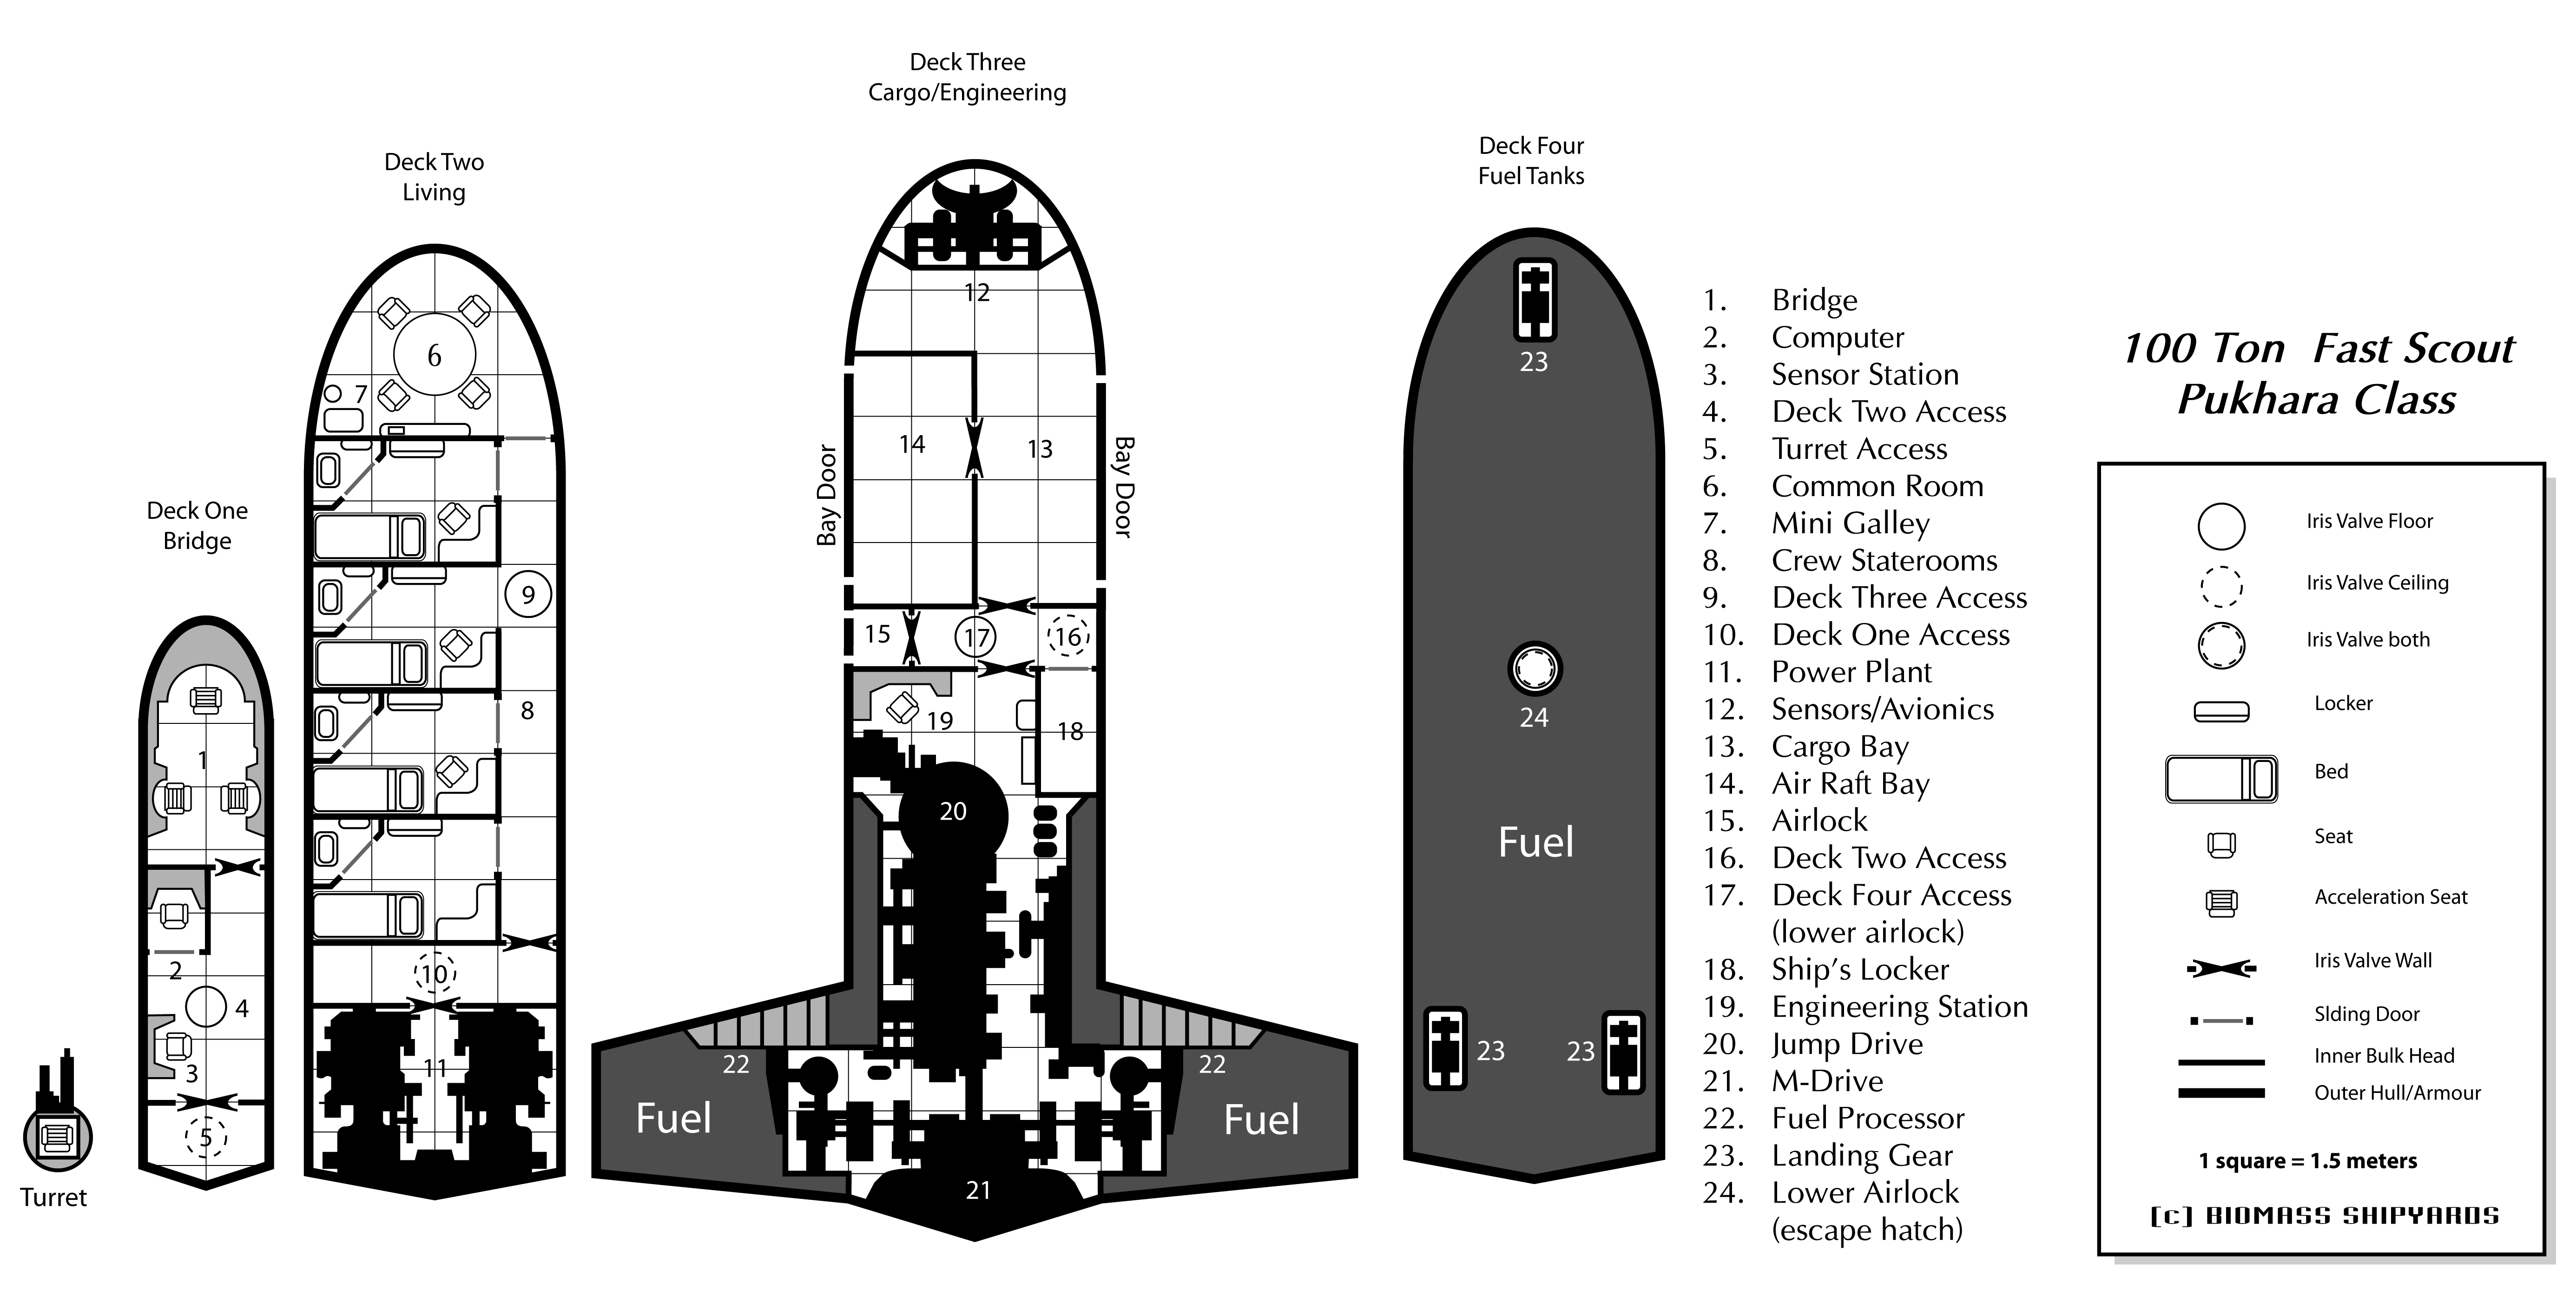 Traveller Fast Scout Deckplan To Model